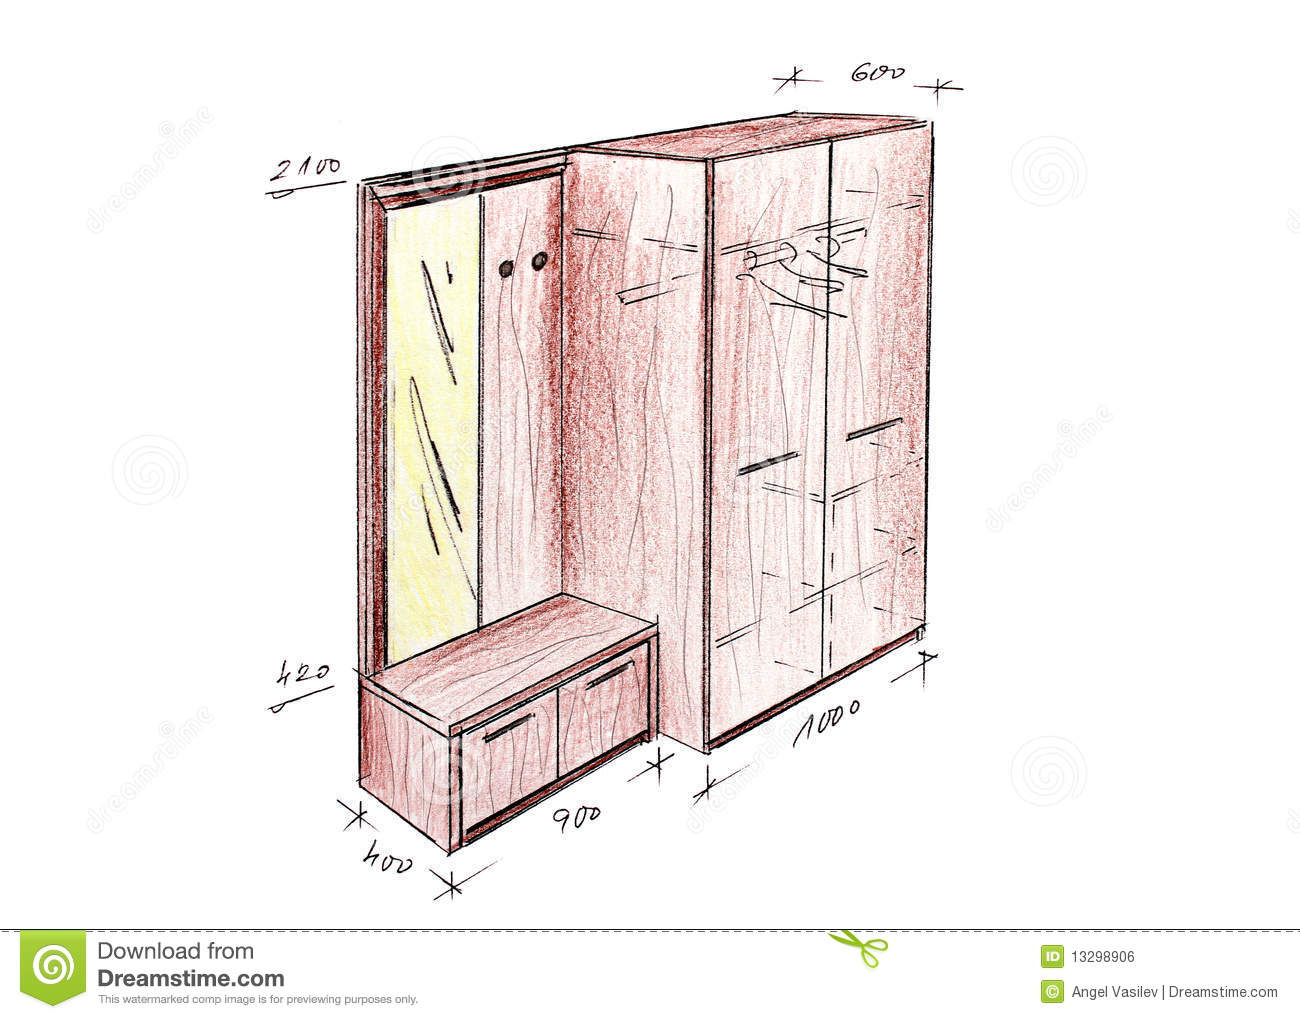 furniture design drawings. royaltyfree stock photo download modern interior design entrance freehand drawing furniture drawings